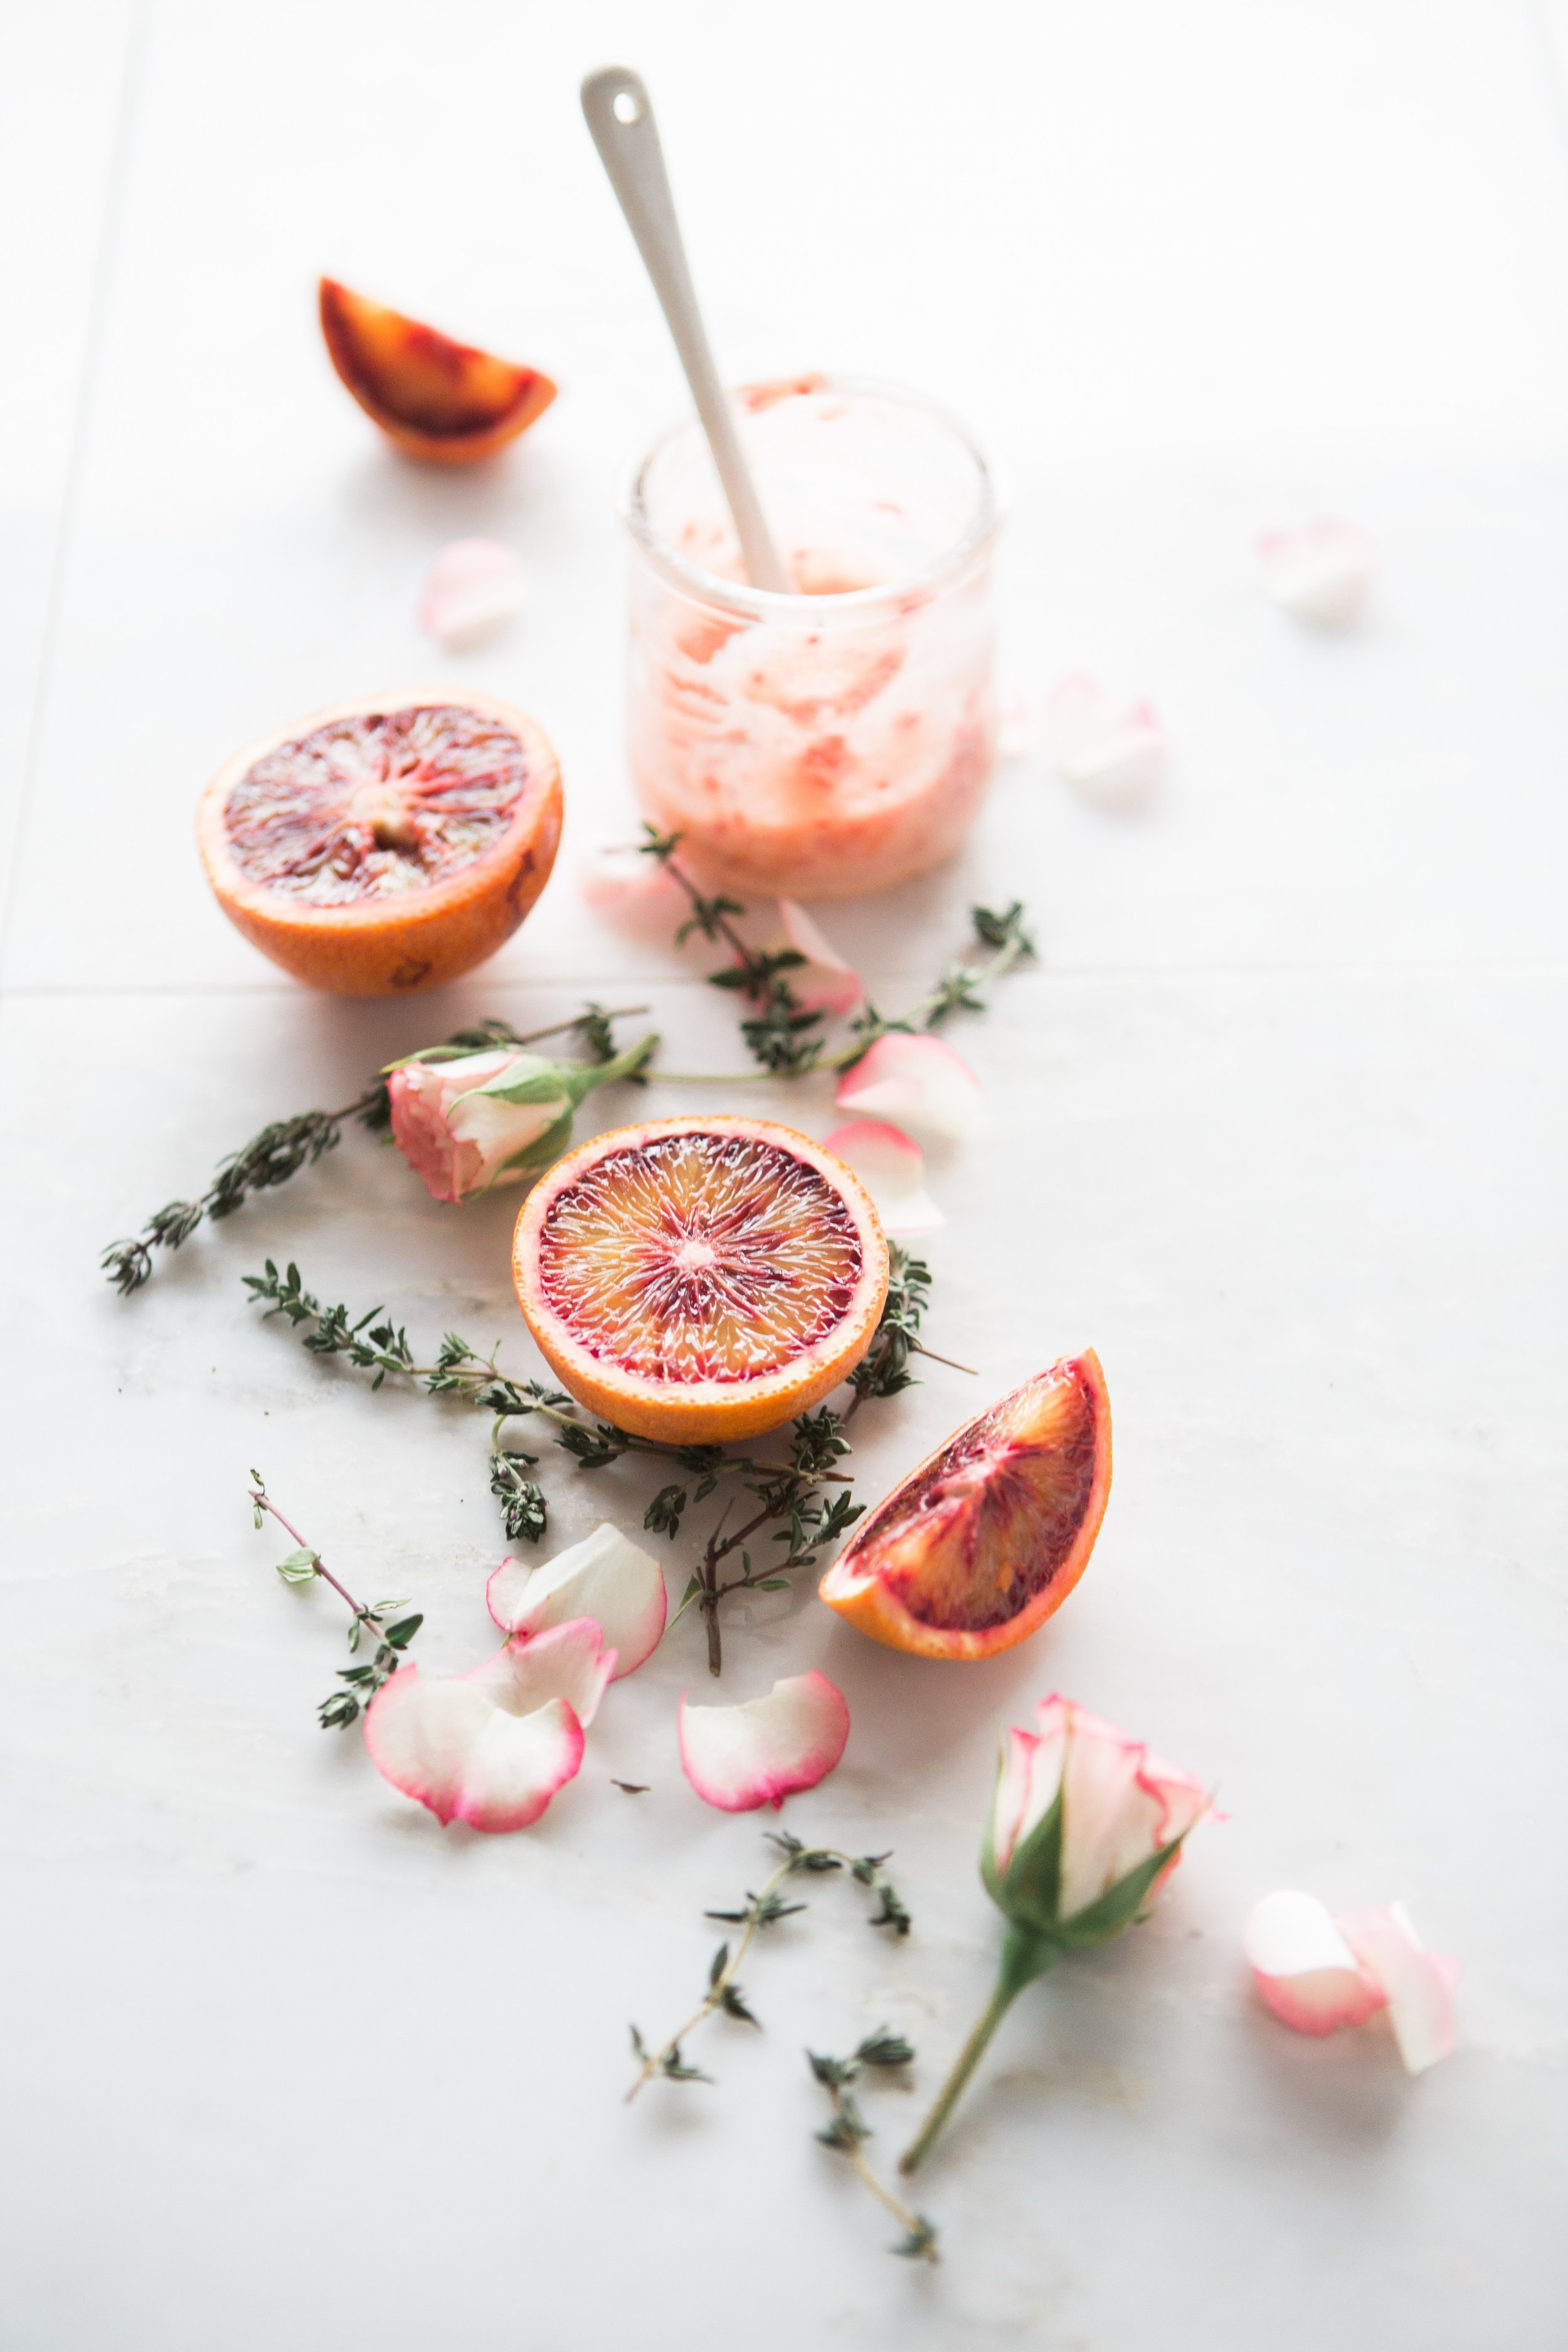 Medicine Making for Spring - As the sun lingers a little longer each day, our skin begins to finally peak out behind bundled layers. We begin to relax. Yet, our bodies may still be in Winter mode—dry, chilled, stagnant. The following remedies, paired with the rest of the information this season should have you feeling Spring-ready.